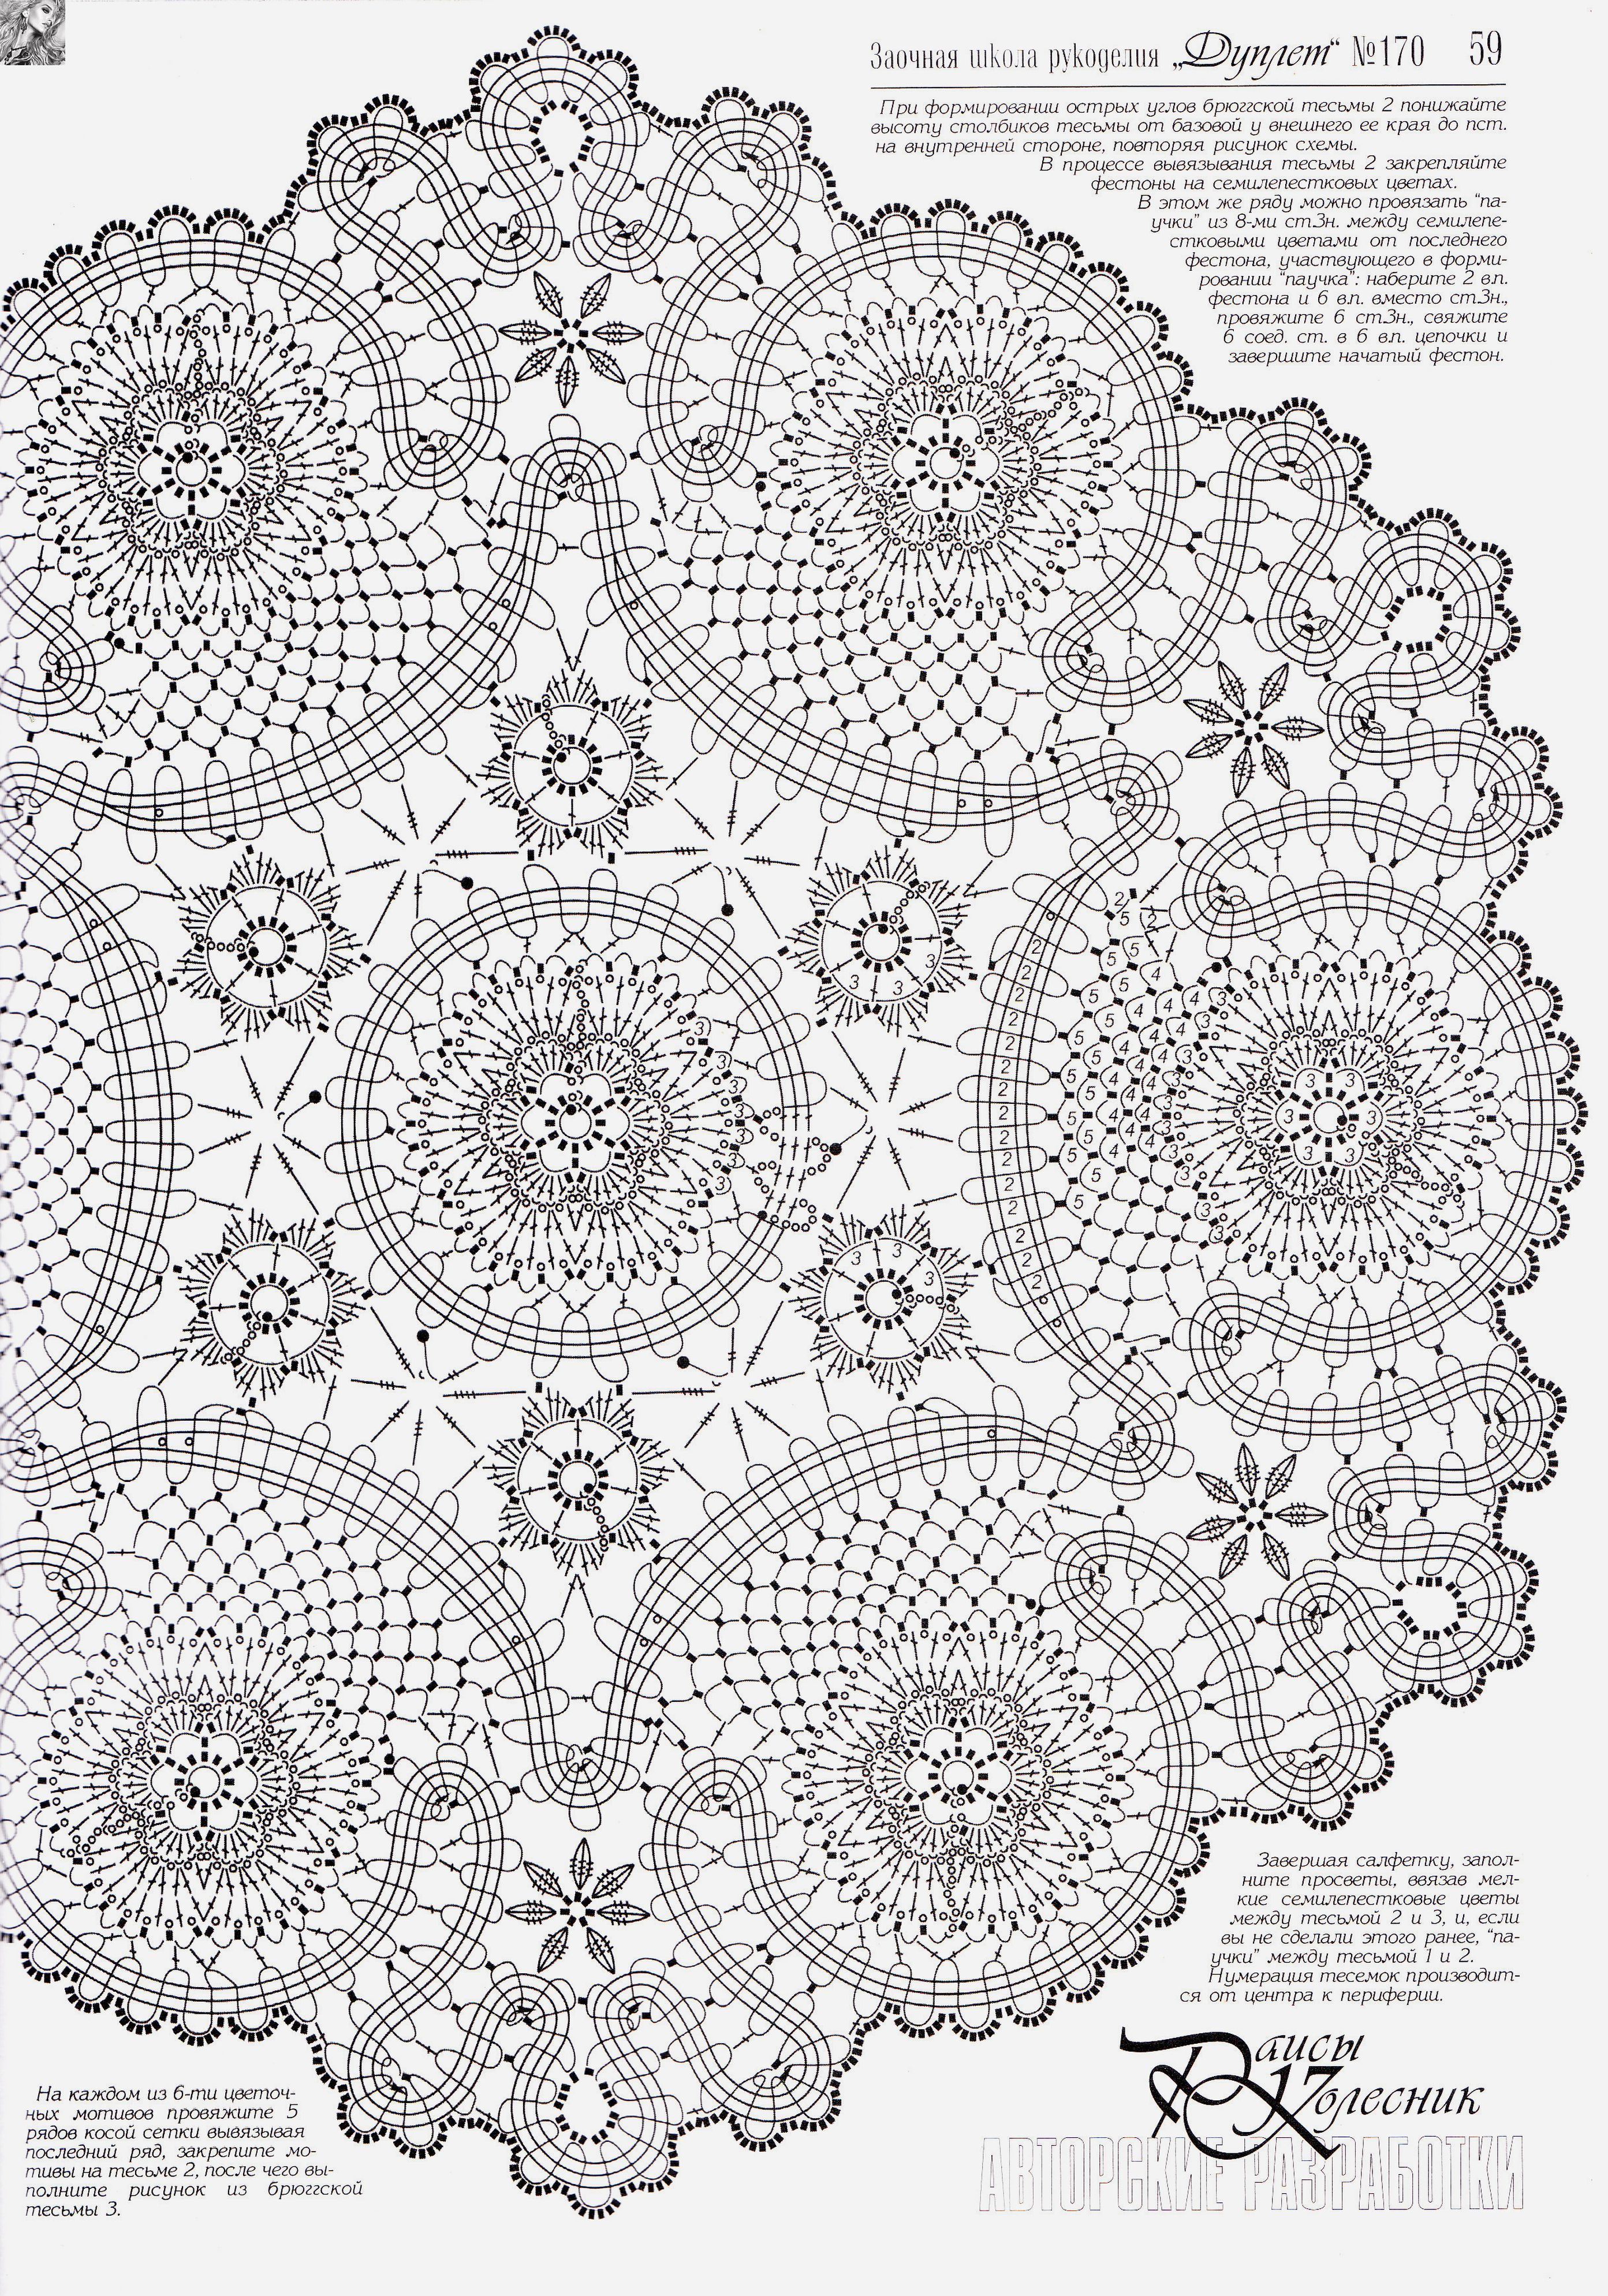 Crochet Doily Diagram Patrones Crochet 2 Crochet Patterns 2 Pin ...